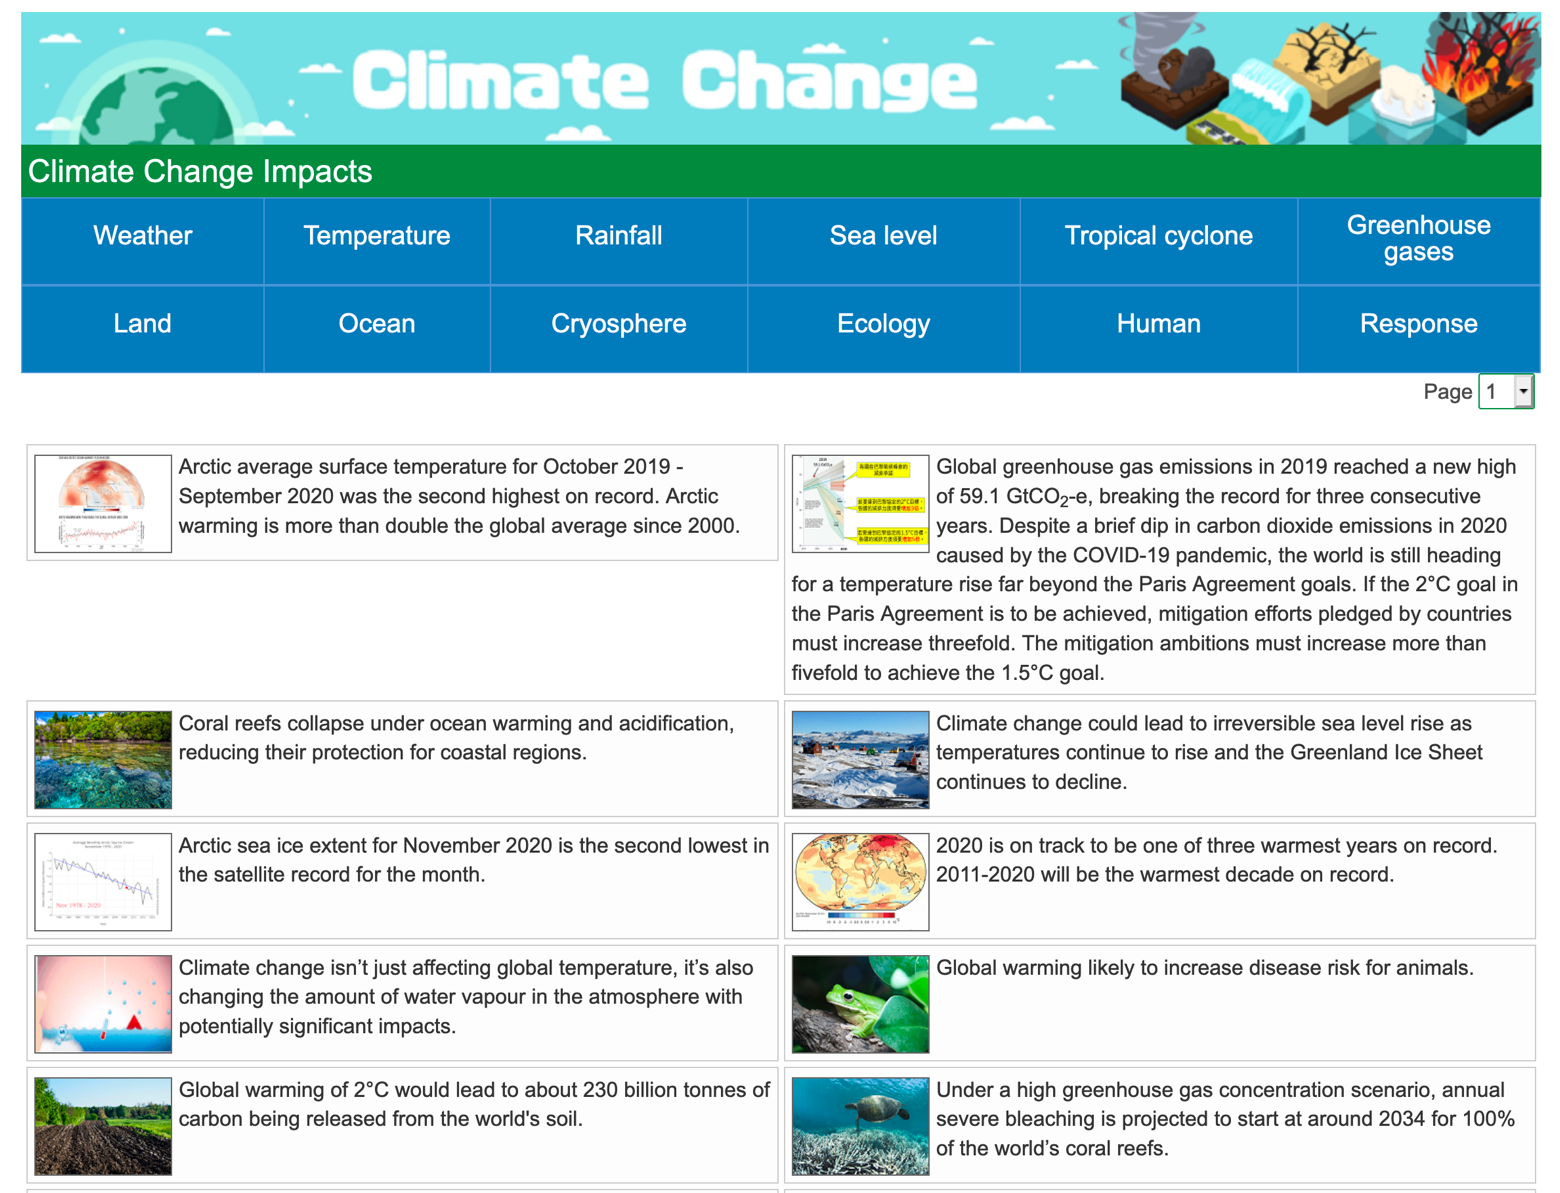 The Climate Change Impacts webpage